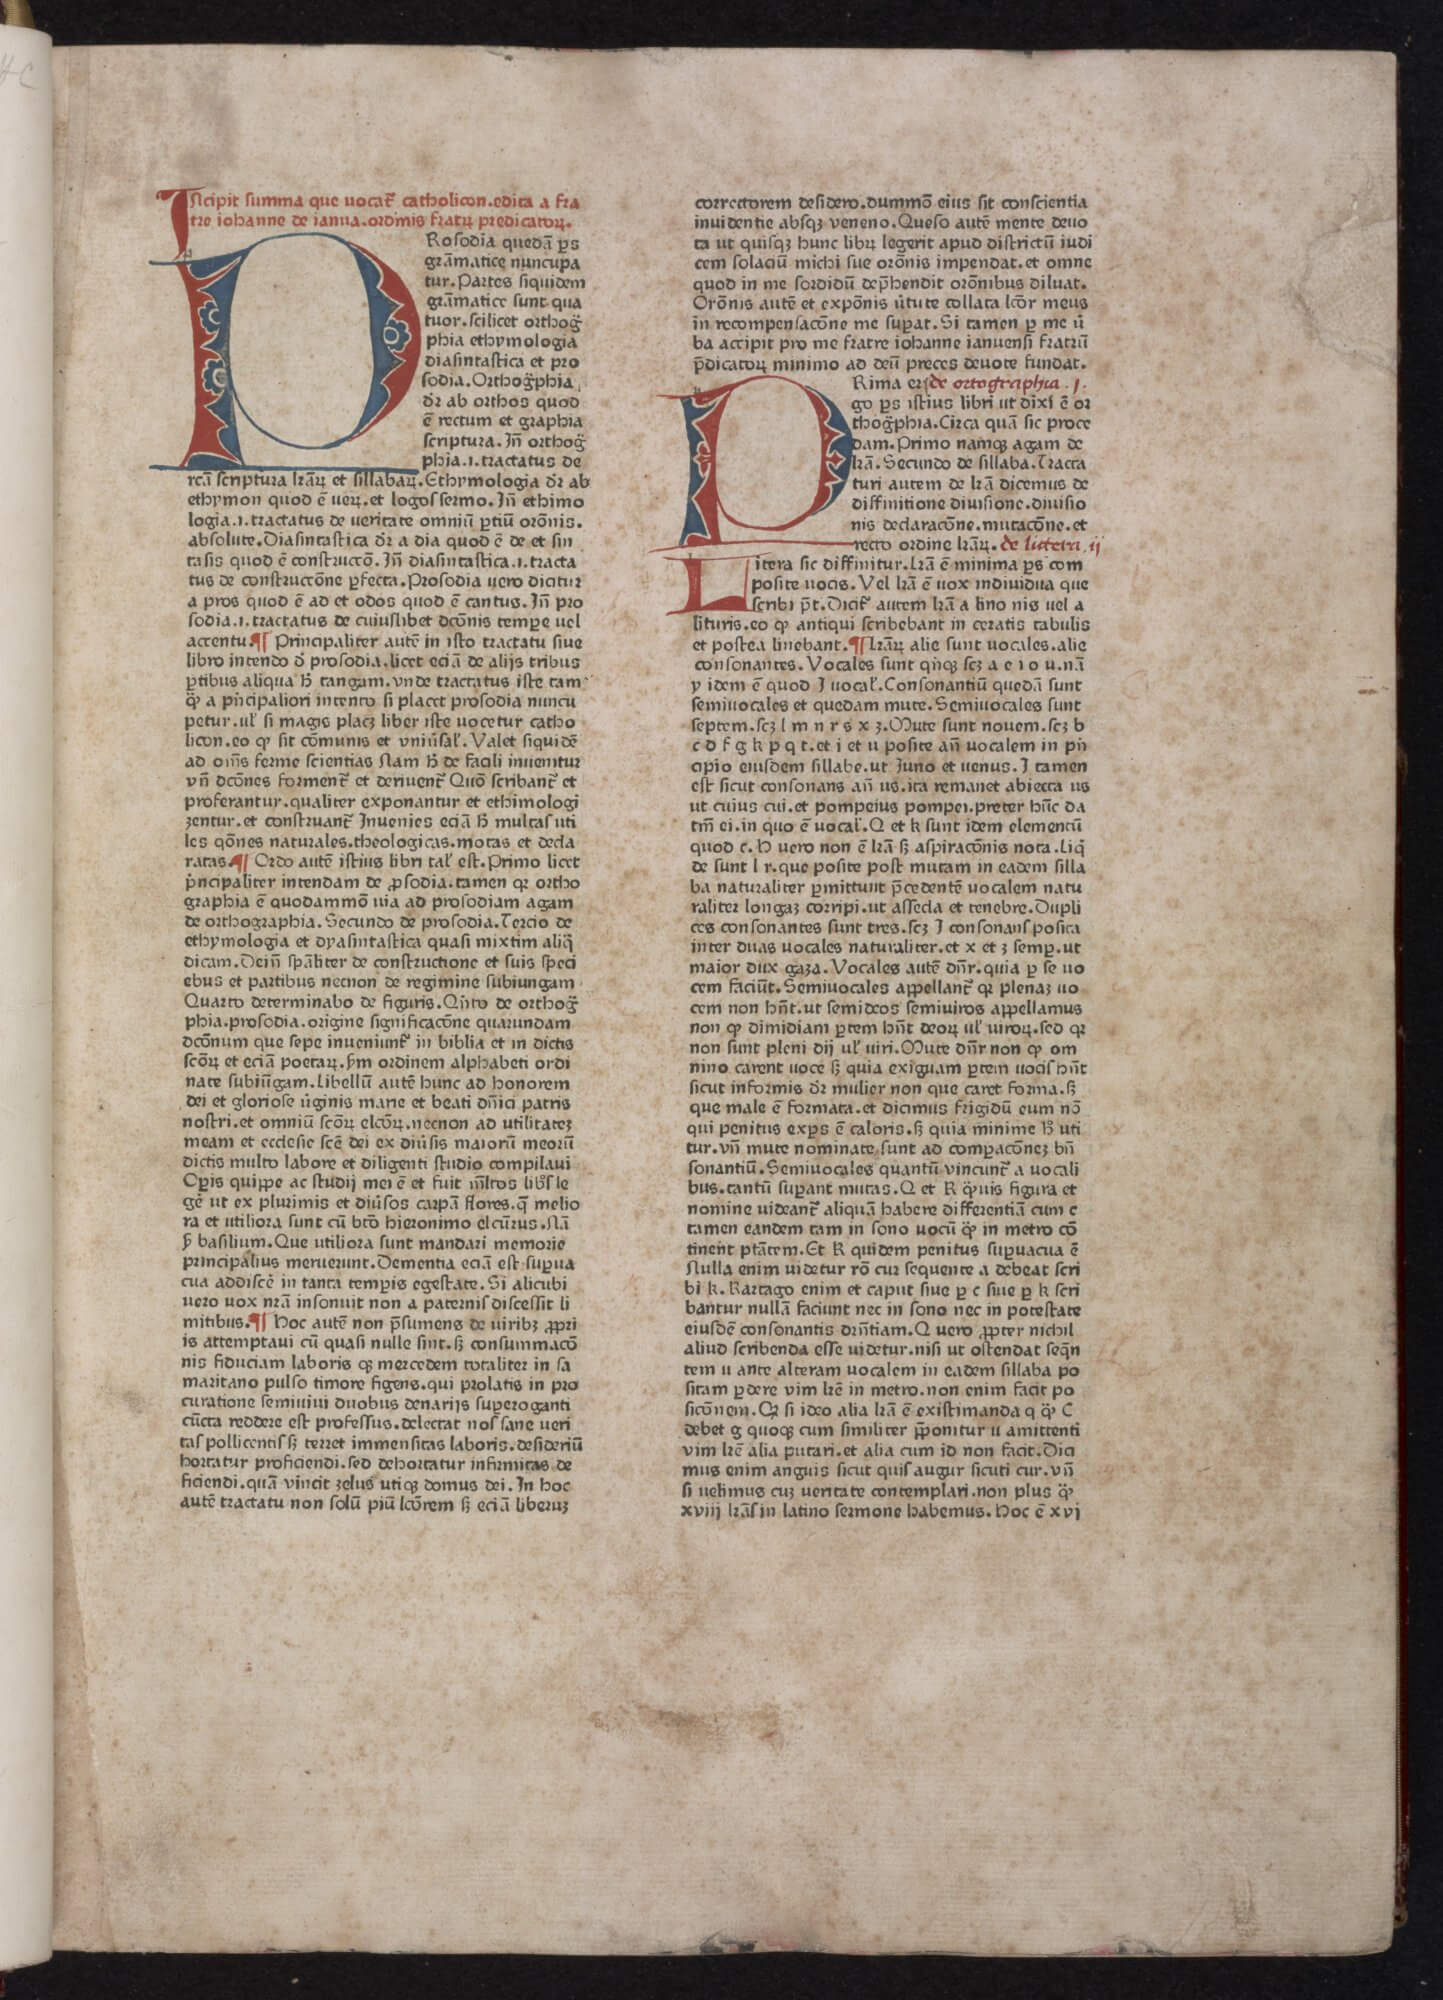 One of the first books to be printed, the 1460 Catholicon continues to be surrounded by uncertainty about exactly who made it and what processes were used. Although it was once assumed that Gutenberg printed the book, that is now doubted. And recent theory is that the book was not printed with individual pieces of movable type, but with cast two-line slugs of type, thus explaining the near exact later impressions printed in 1469 and 1472.